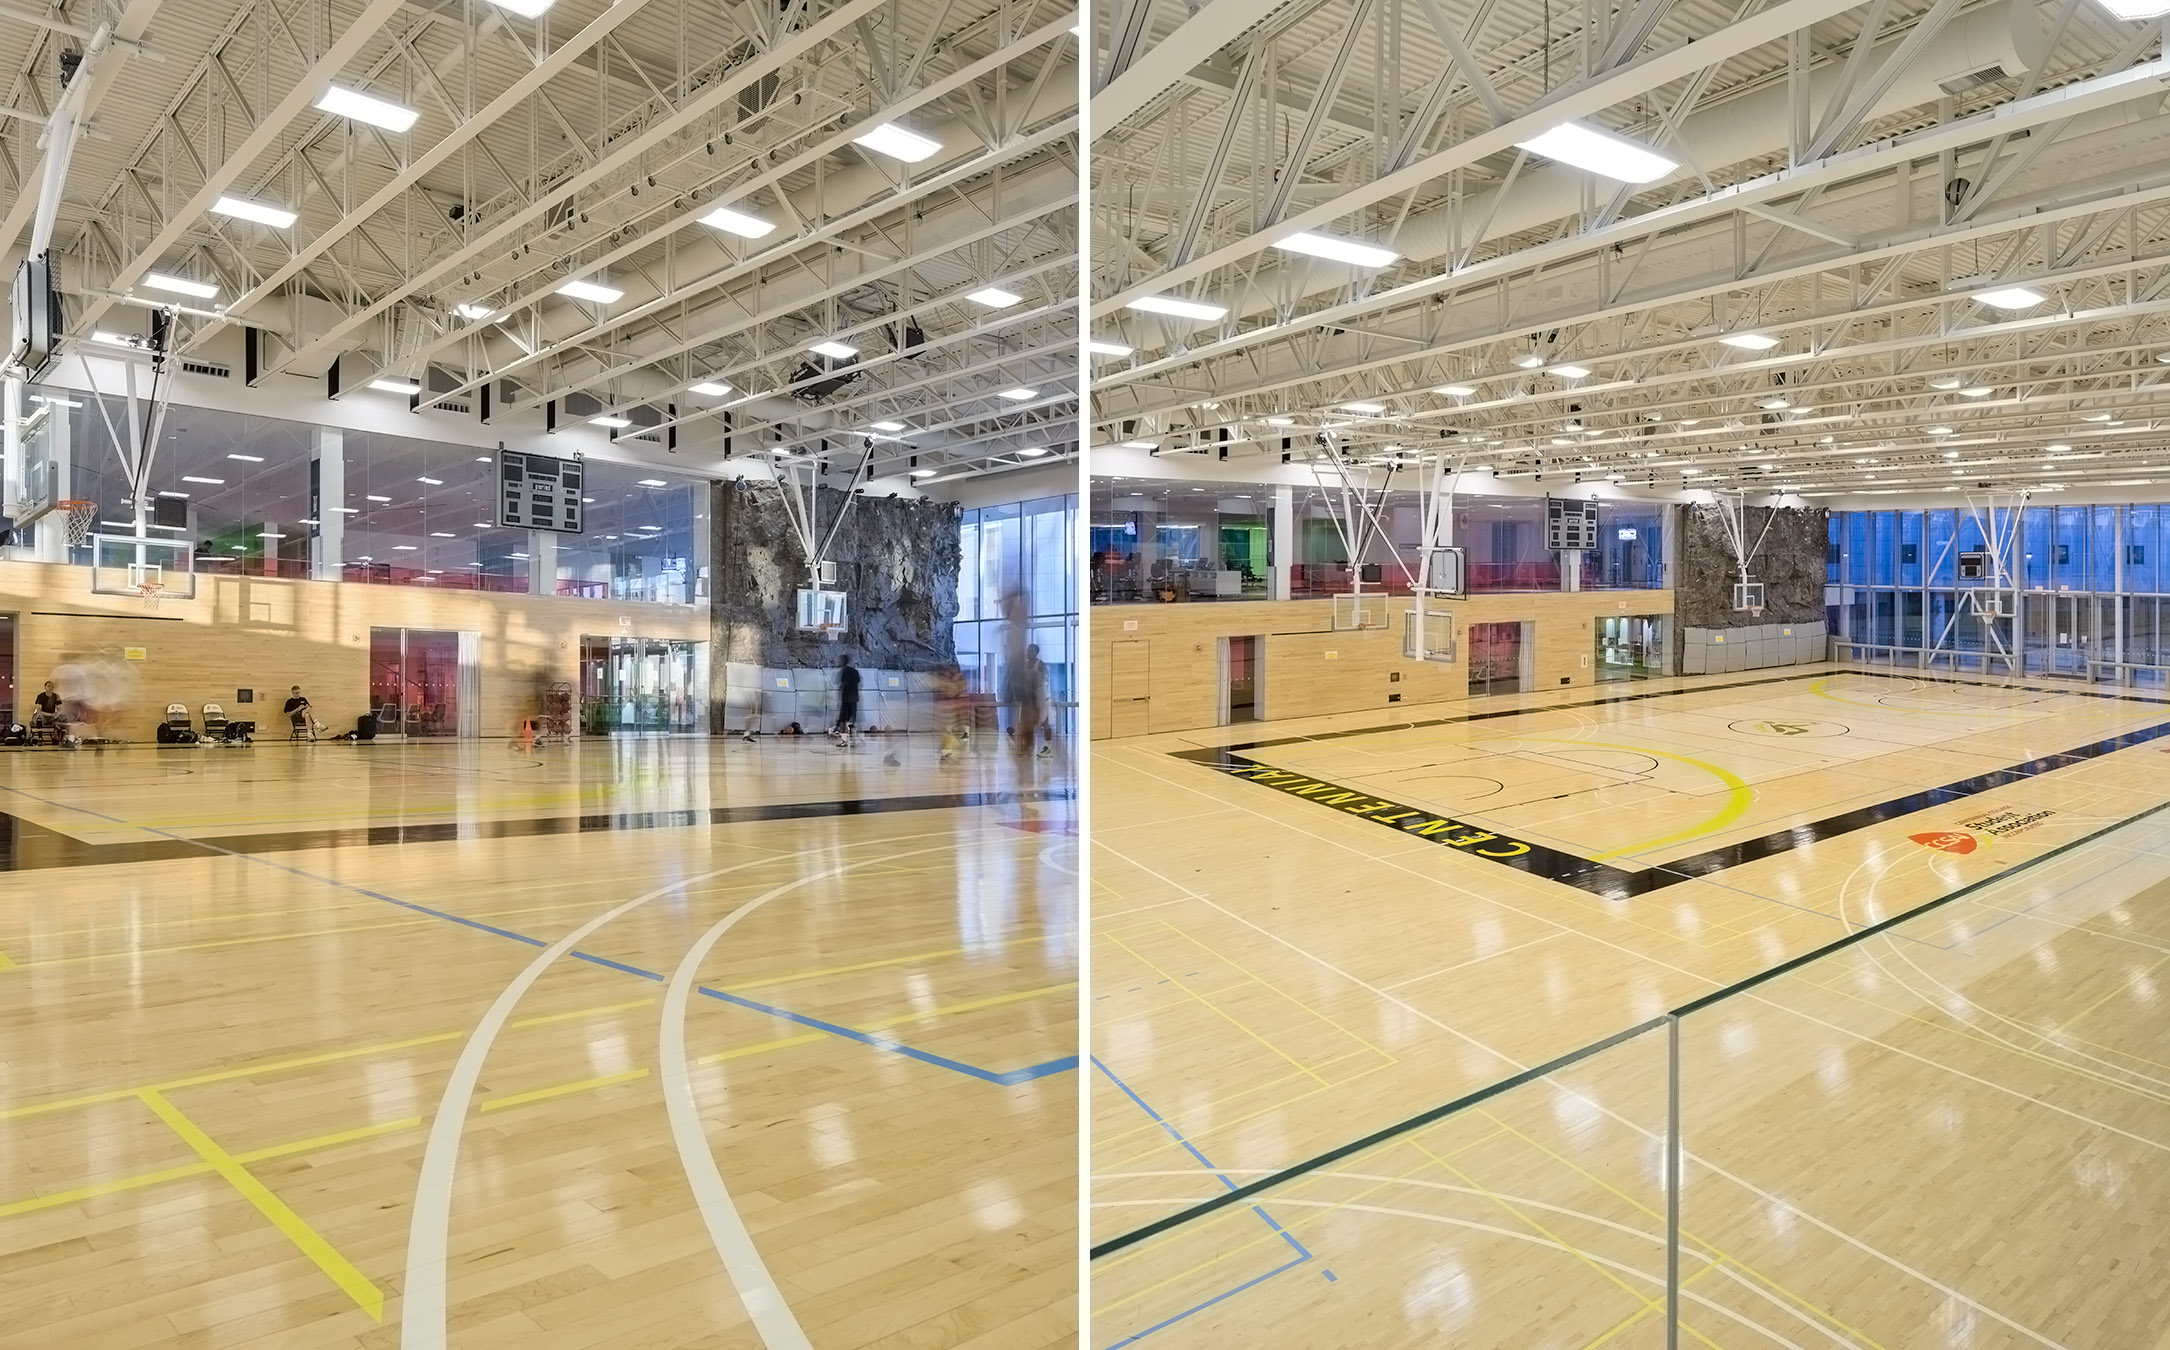 toronto-architectural-photography-centennial-college-athletic-centre-kongats-architects.jpg